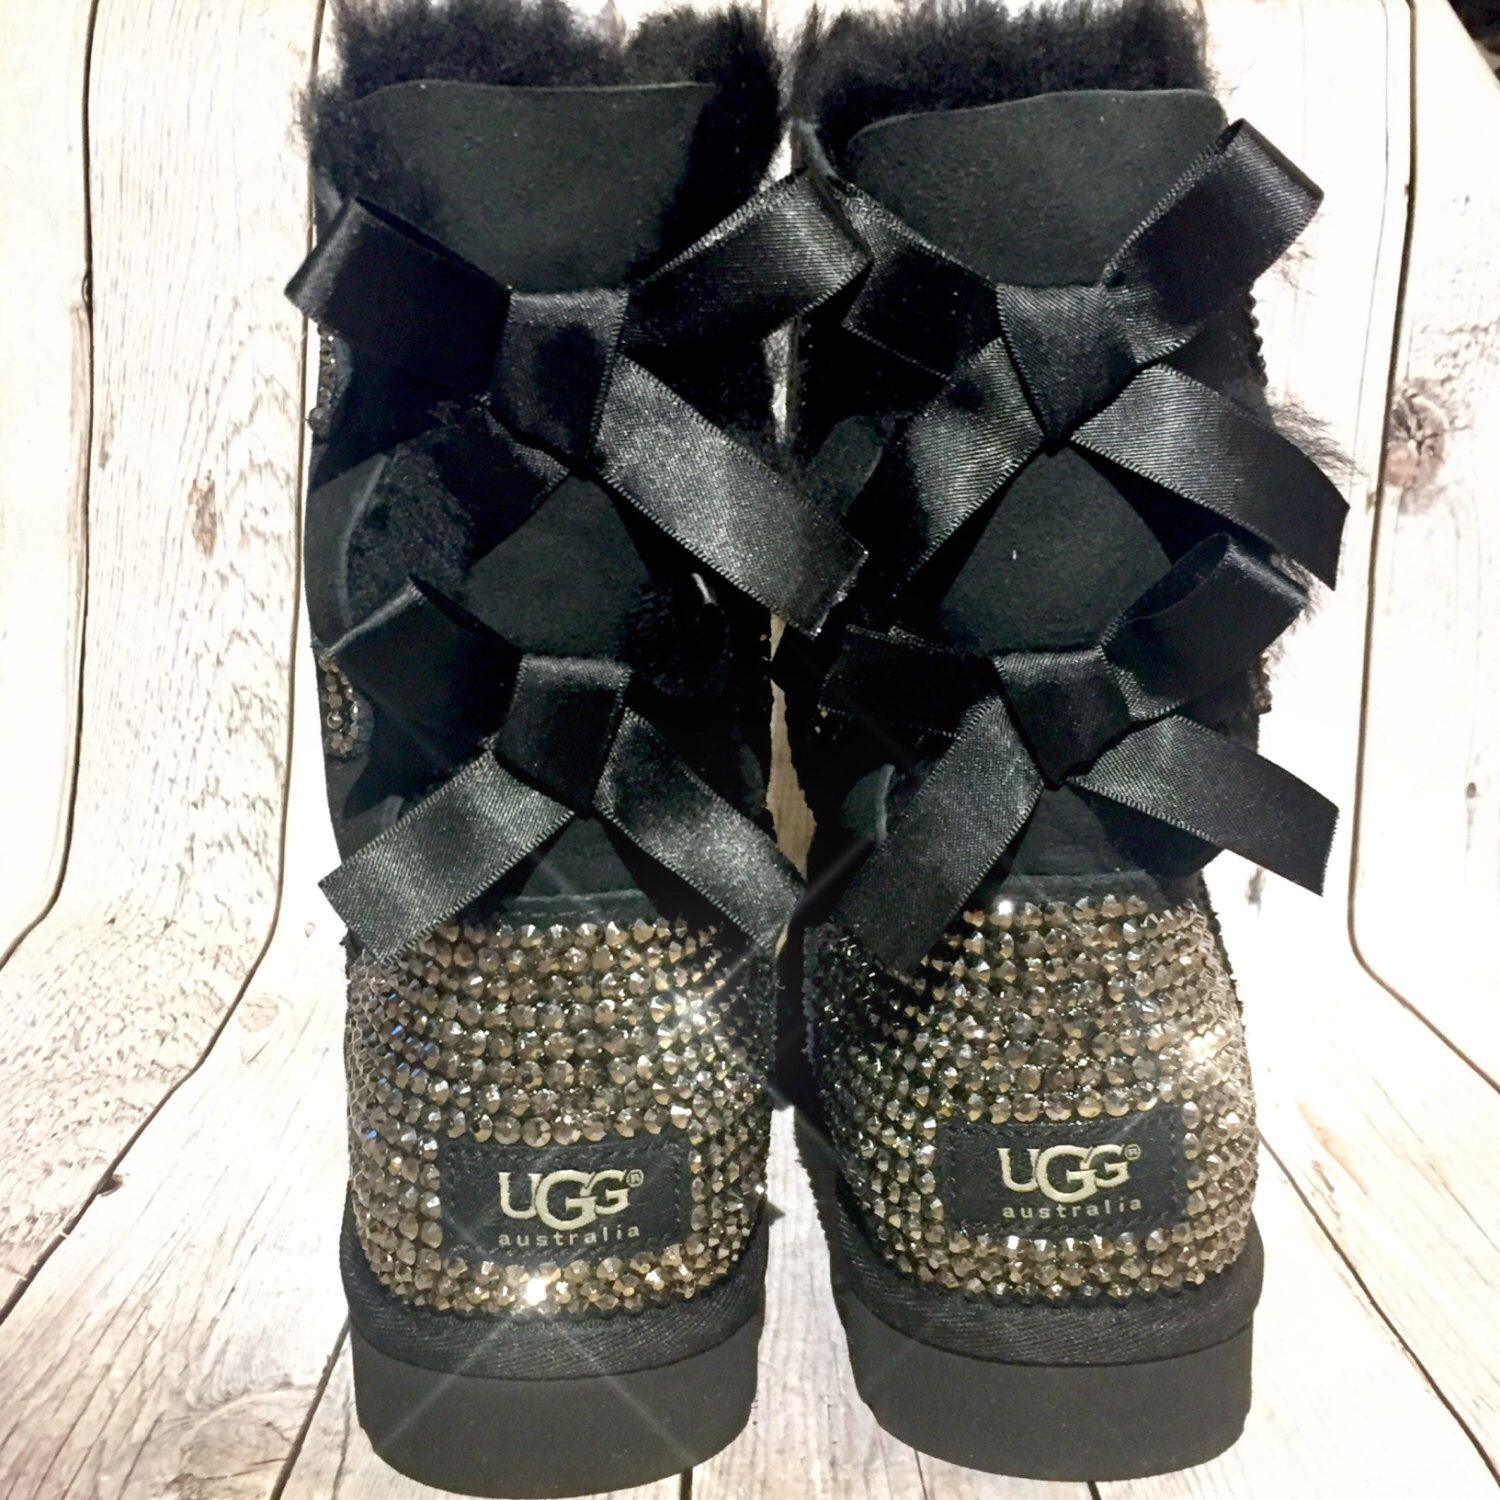 0caf0ecd6c6 Pin by Danielle Donati on DAM Fancy Creations | Ugg boots with bows ...